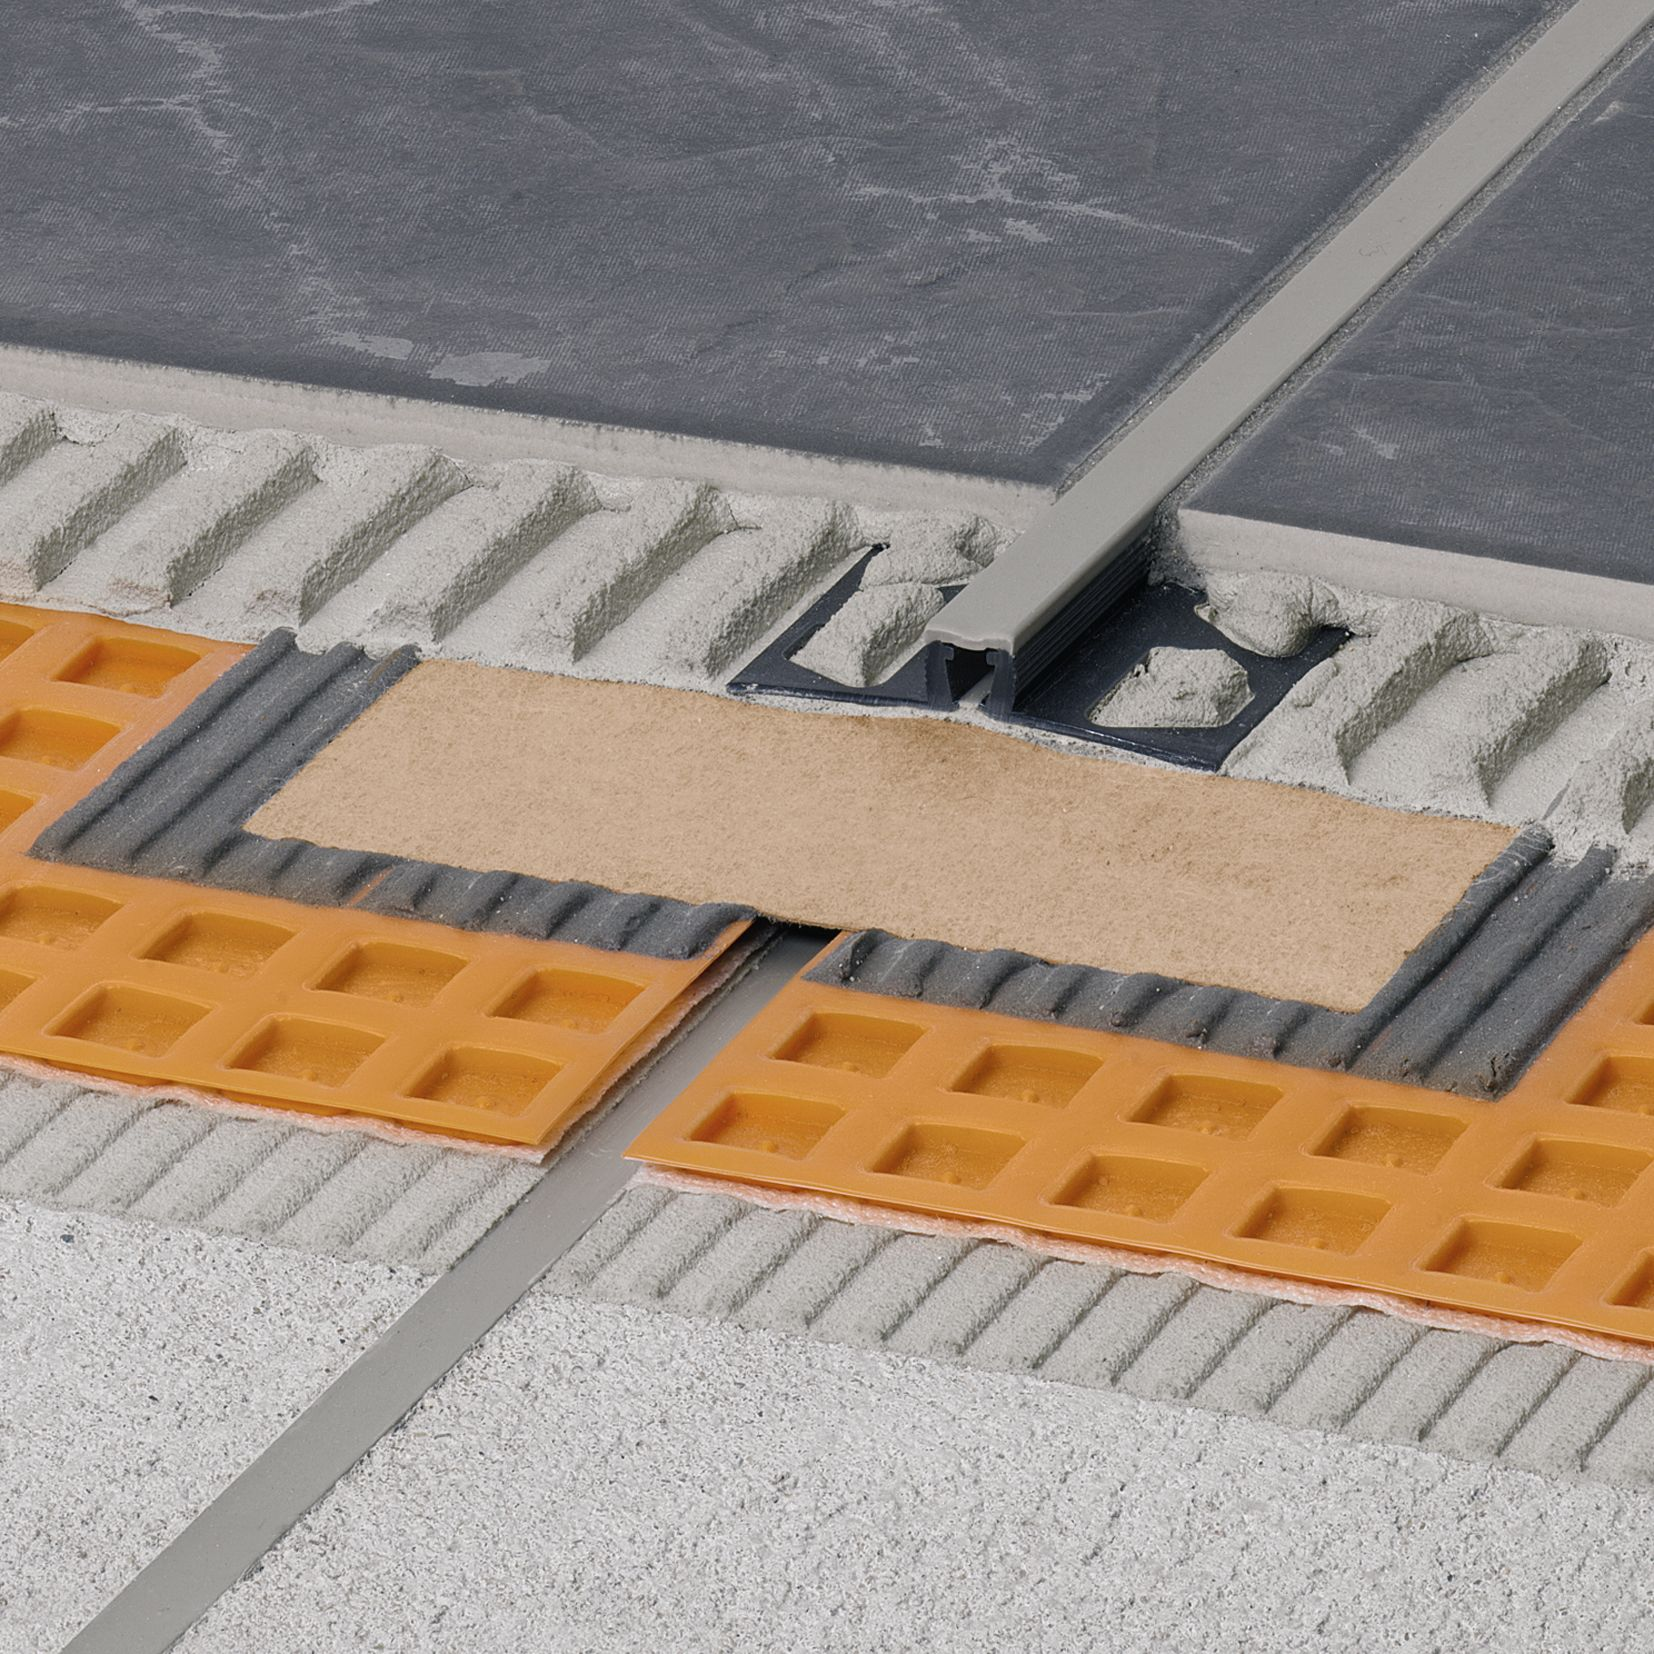 Essential water management in exterior tile installations schluter regardless of the installation method used movement joints must be provided in the tile layer to accommodate the expansion and contraction associated with dailygadgetfo Images